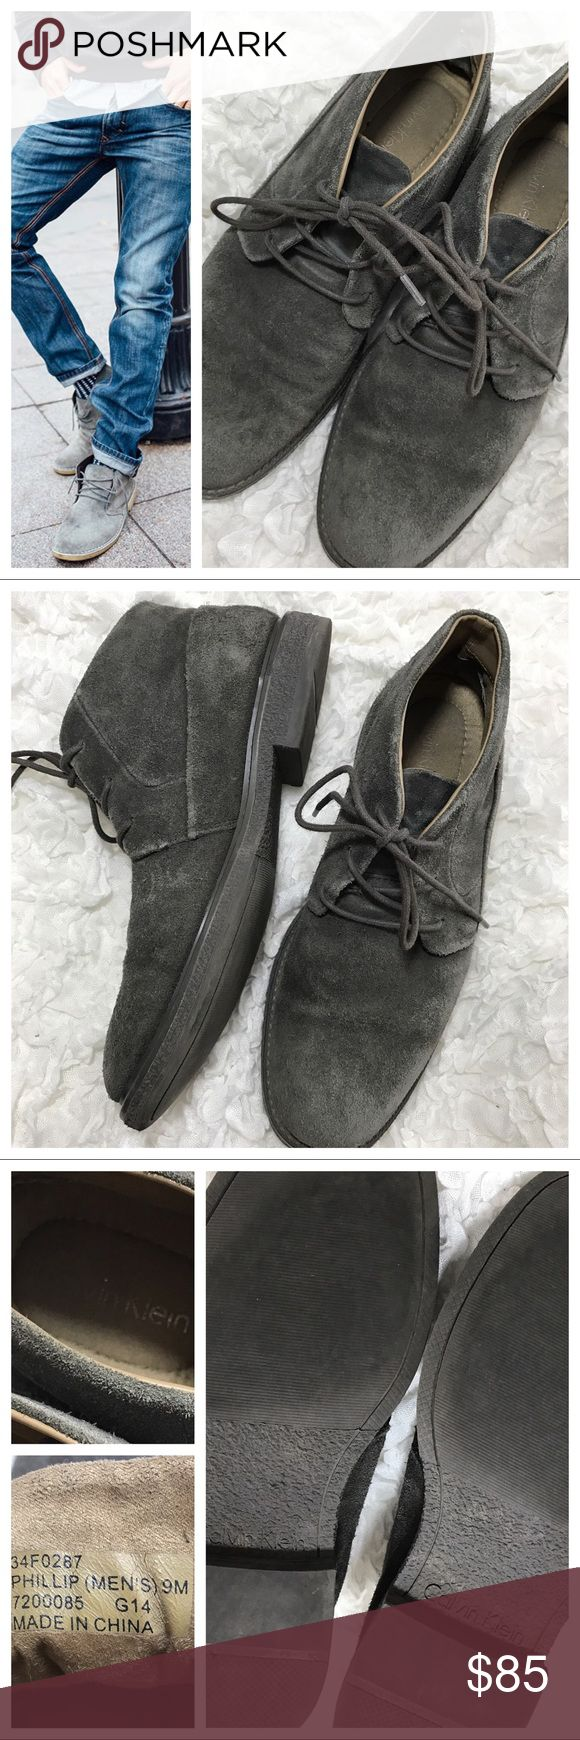 Men's CK Phillip - Suede Chukka Boot Beautiful grey suede upper, rubber sole. Excellent condition by CK. Calvin Klein Shoes Chukka Boots